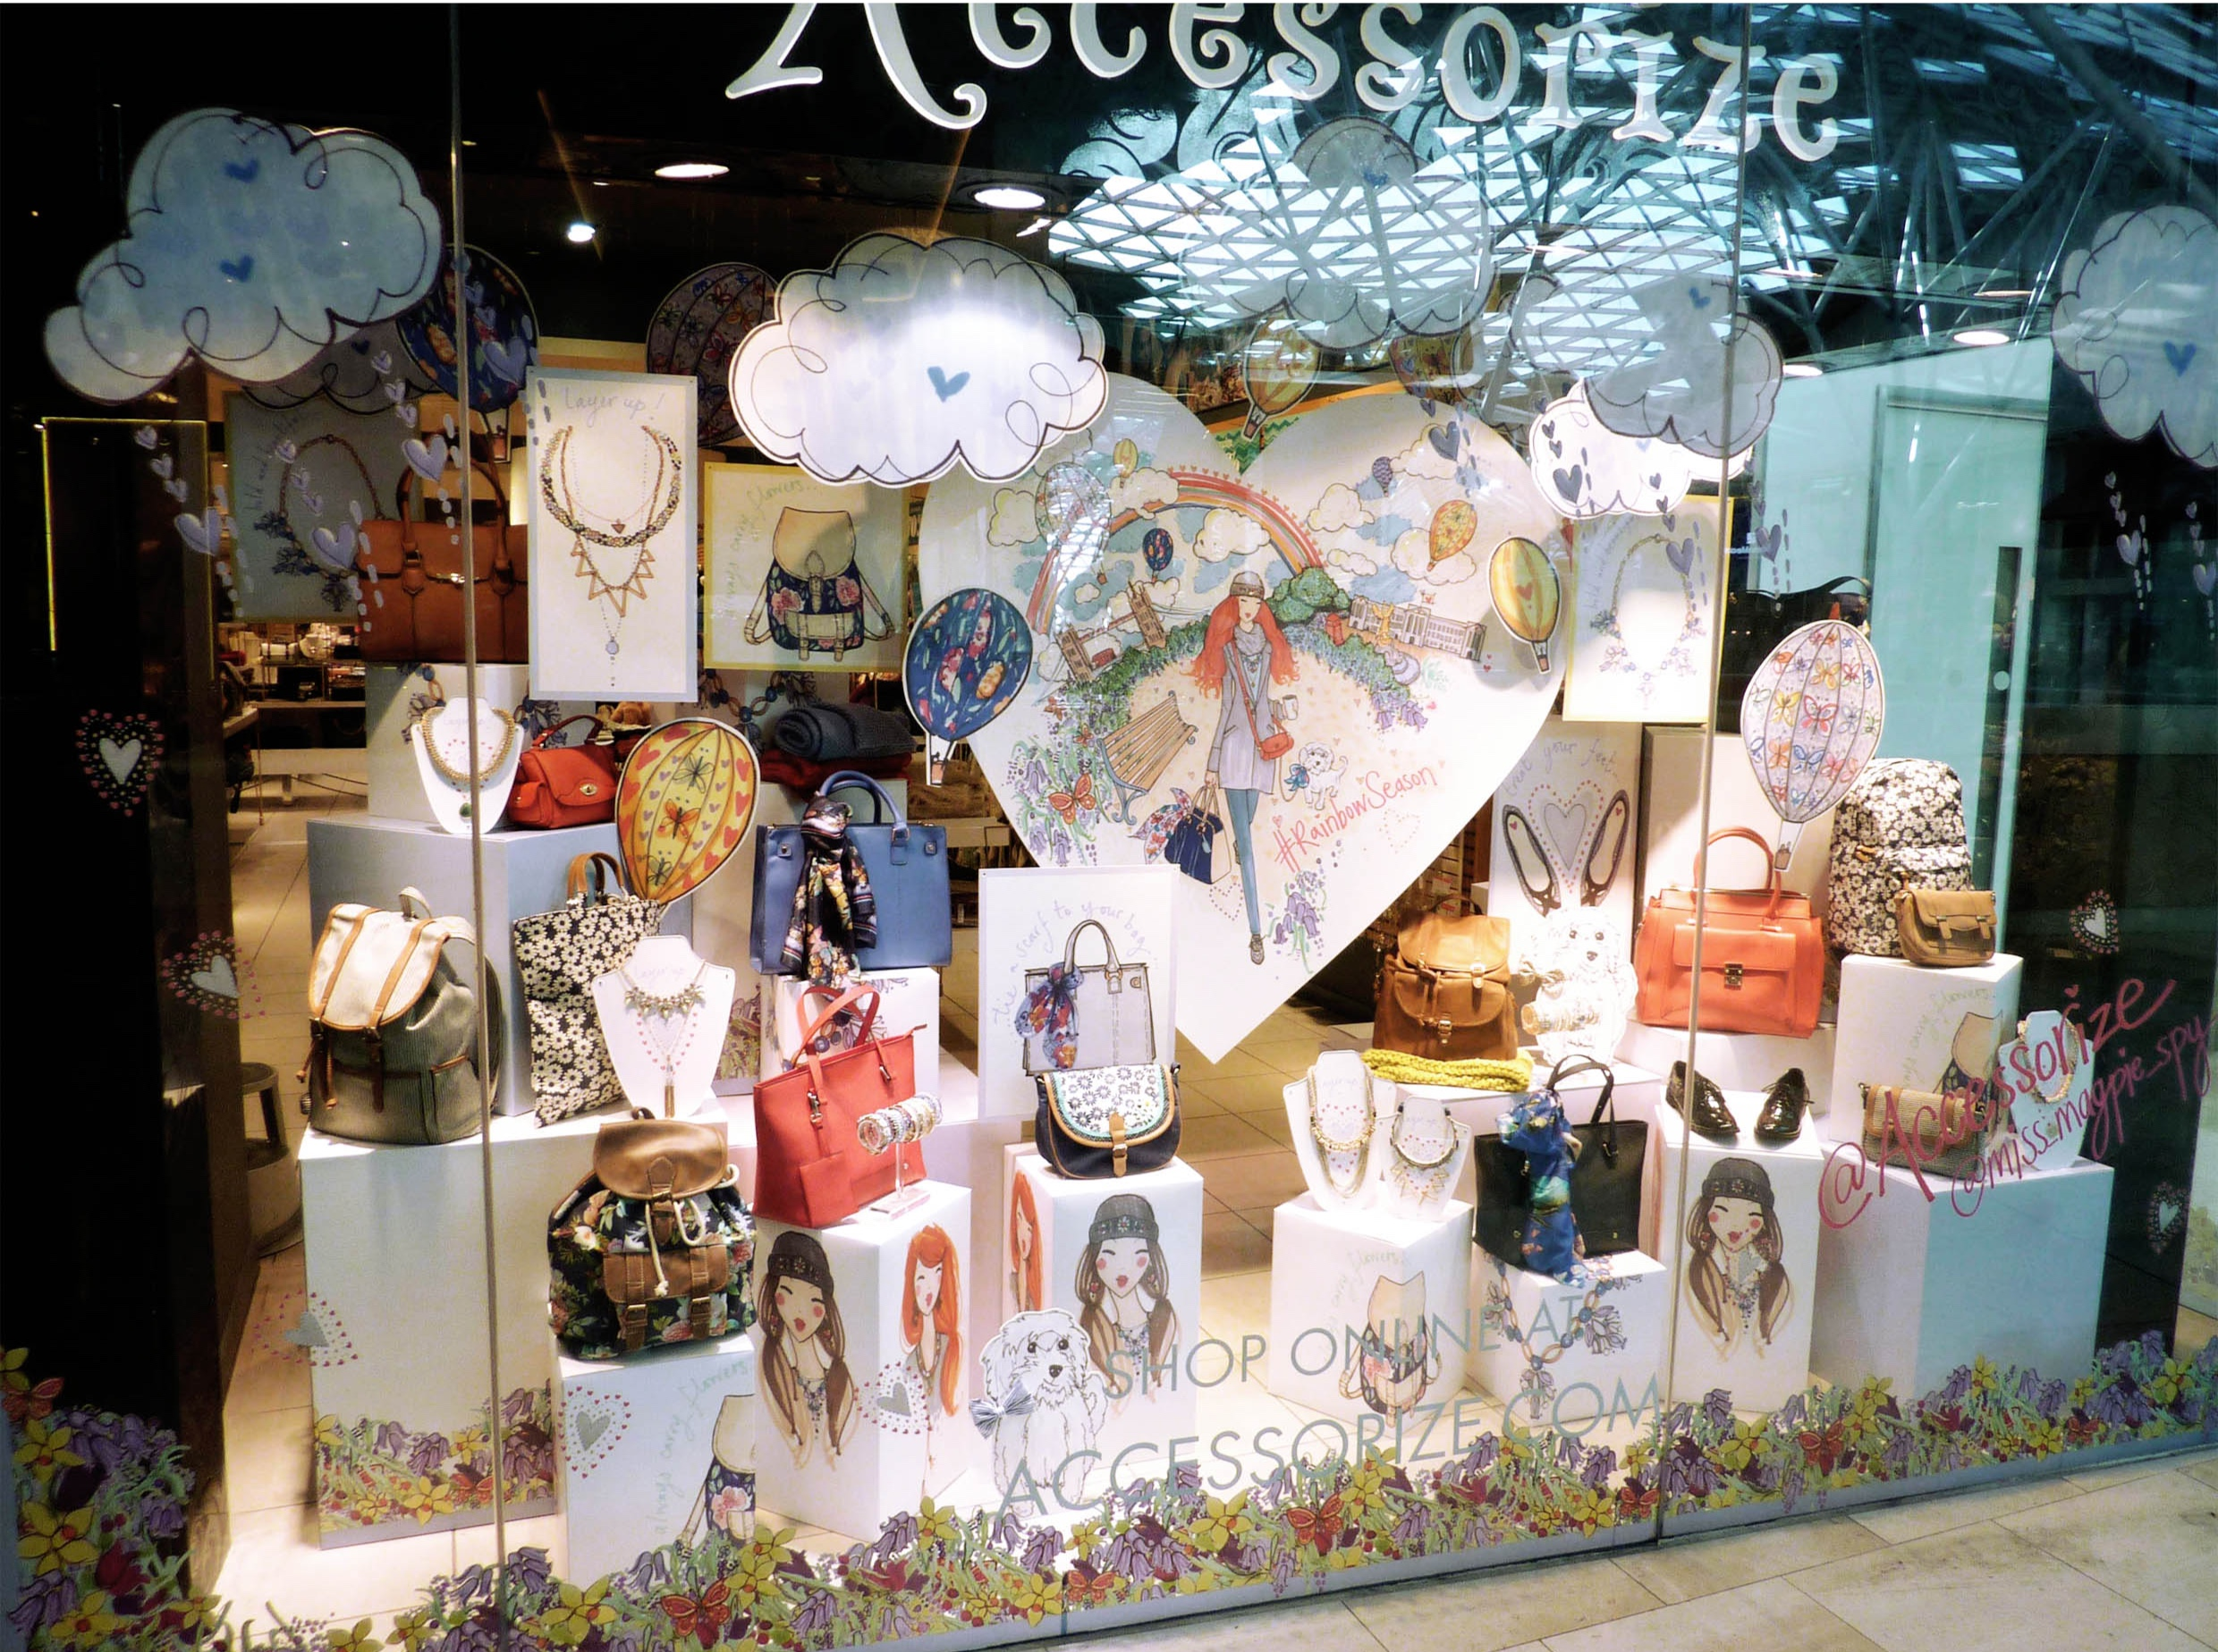 Accessorize Worldwide window display